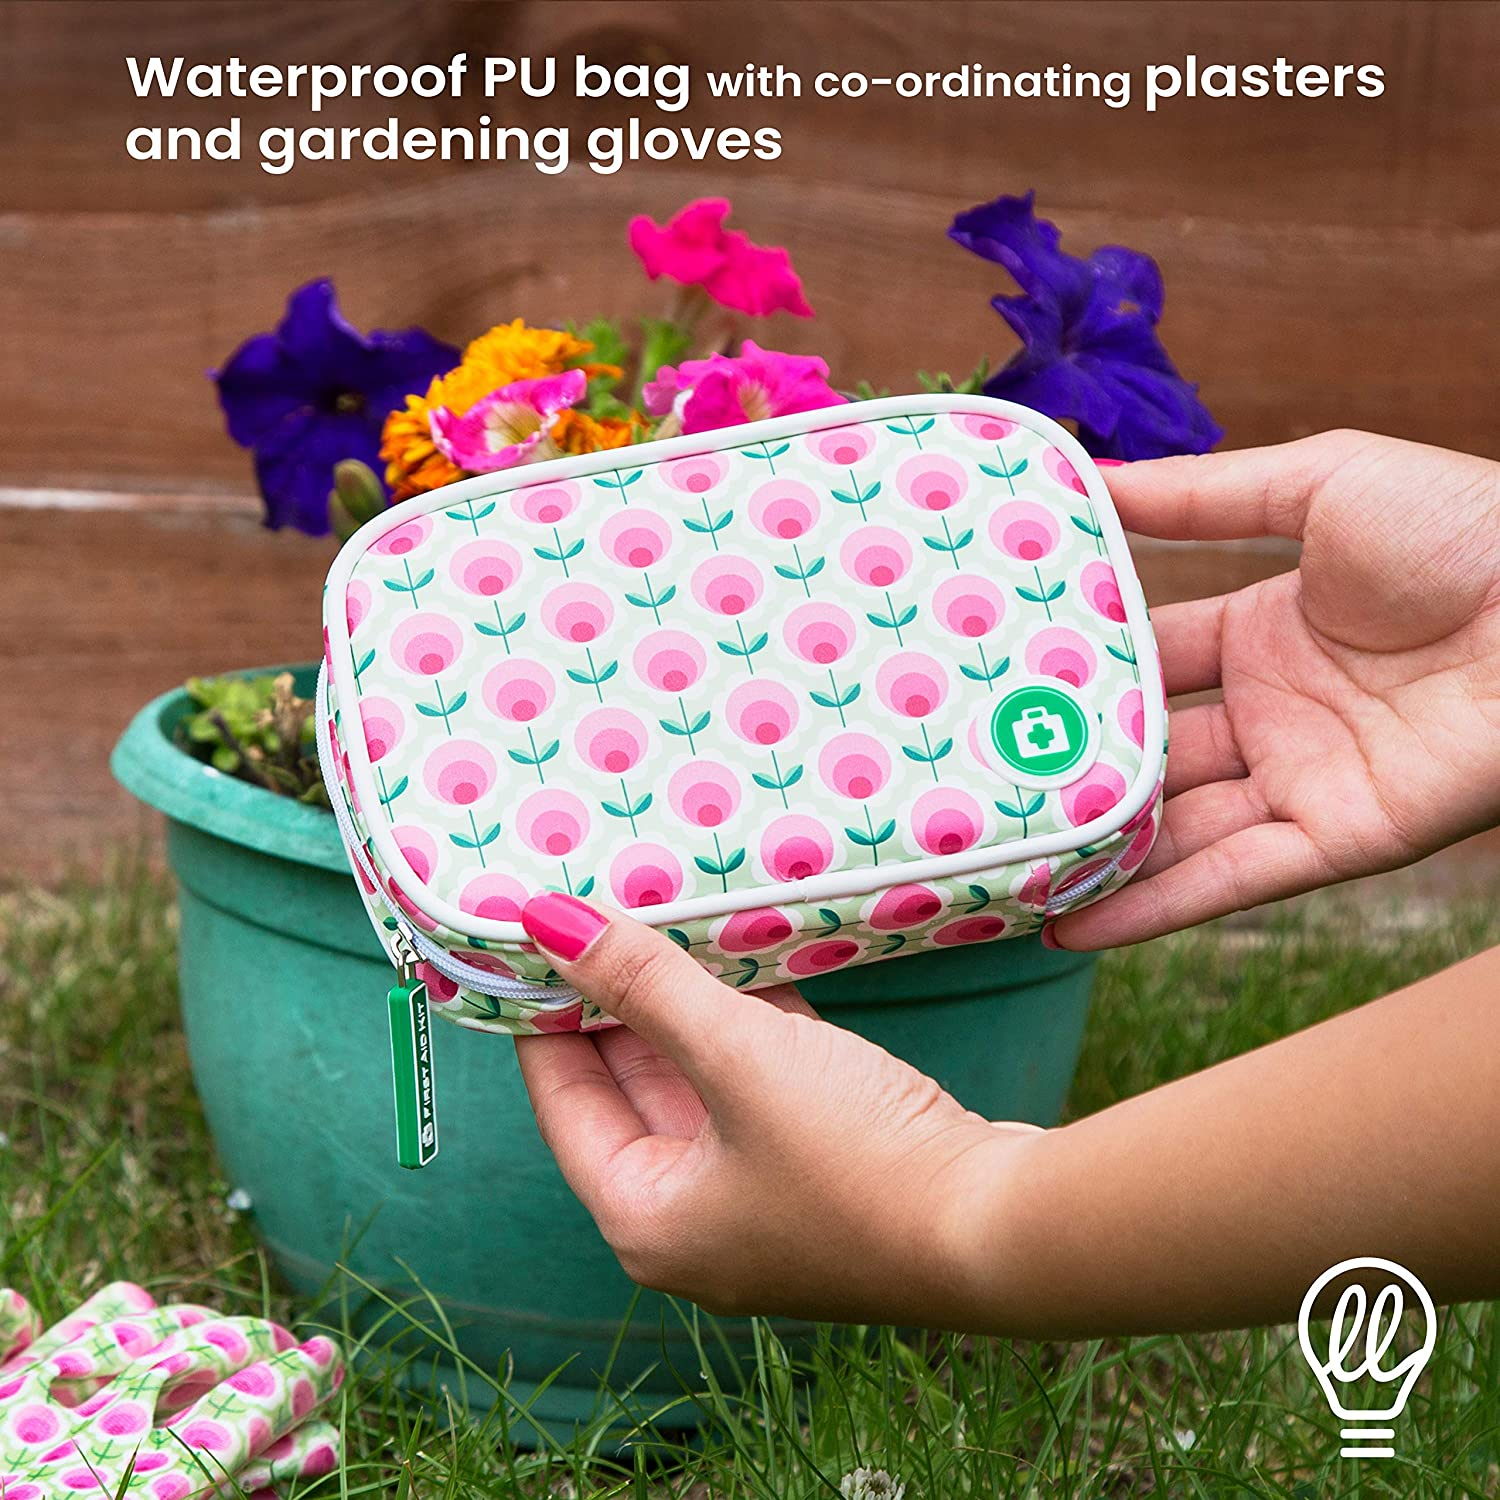 Yellodoor 85 Pcs Mini First Aid Kit with Scissors Antiseptic Wipes Includes Ladies Gardening Gloves Waterproof Plasters First Aid Bag for Travel and Garden Ideal Mum Gifts Bandage Pink Vegan